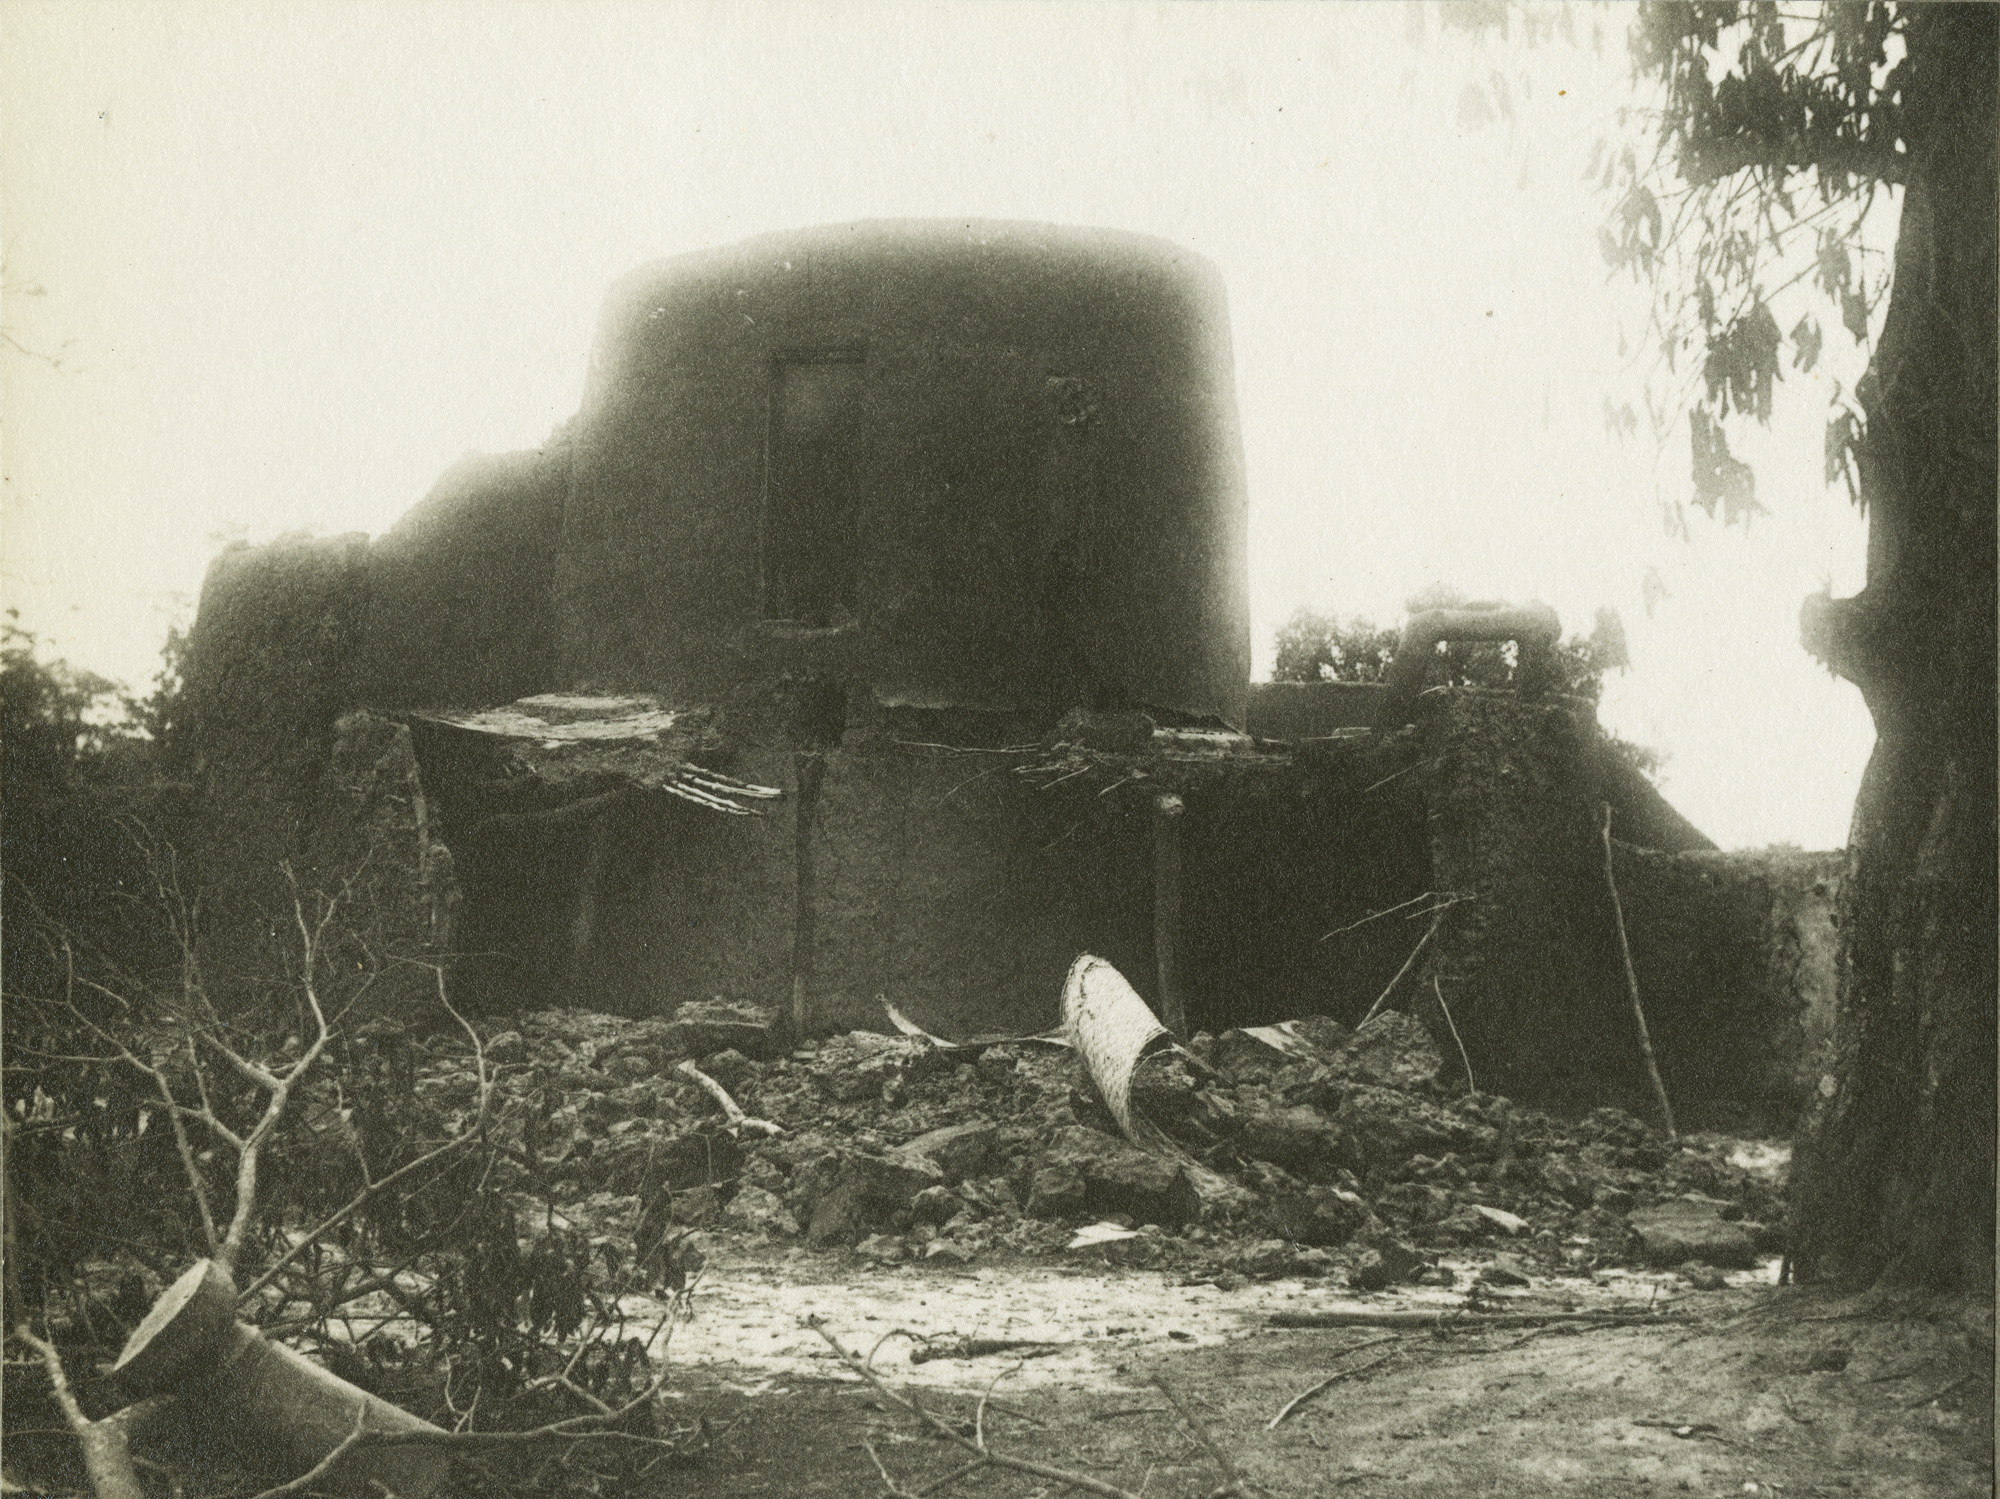 Burned village photograph from Foulkes Album